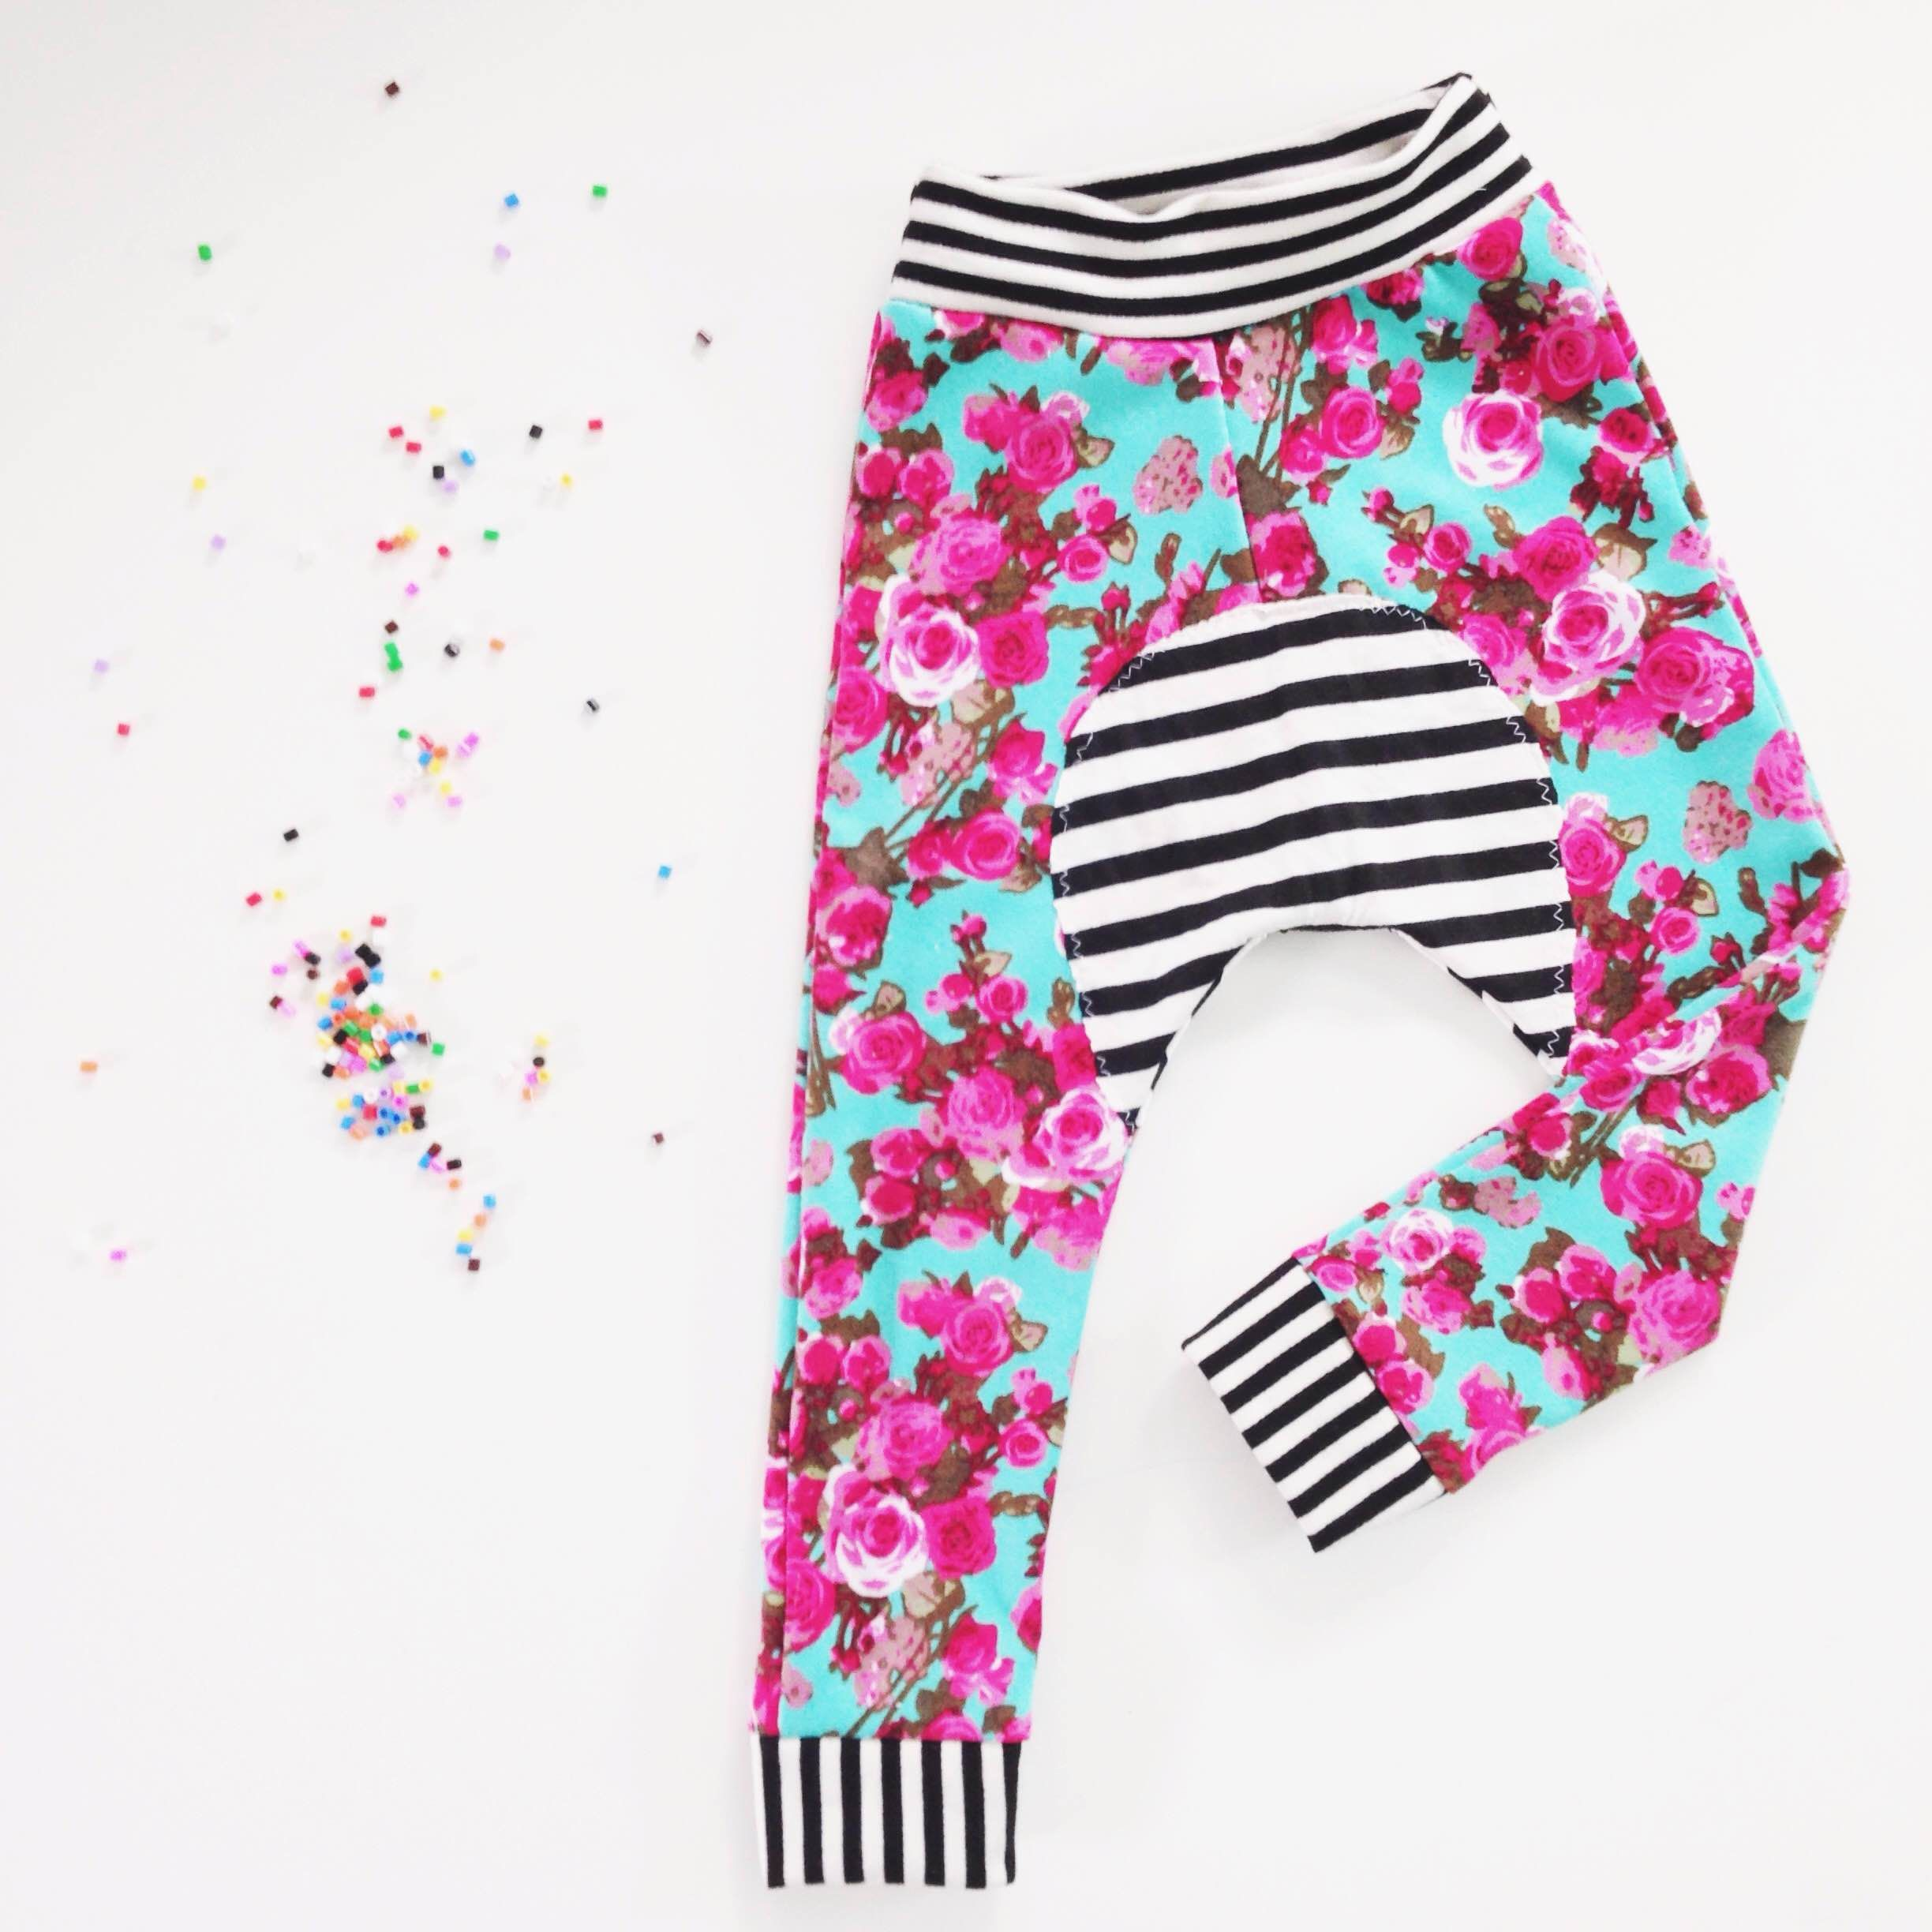 NEW PATTERN! The ARLO shorties + knit pants | Costura, Ropa de bebés ...